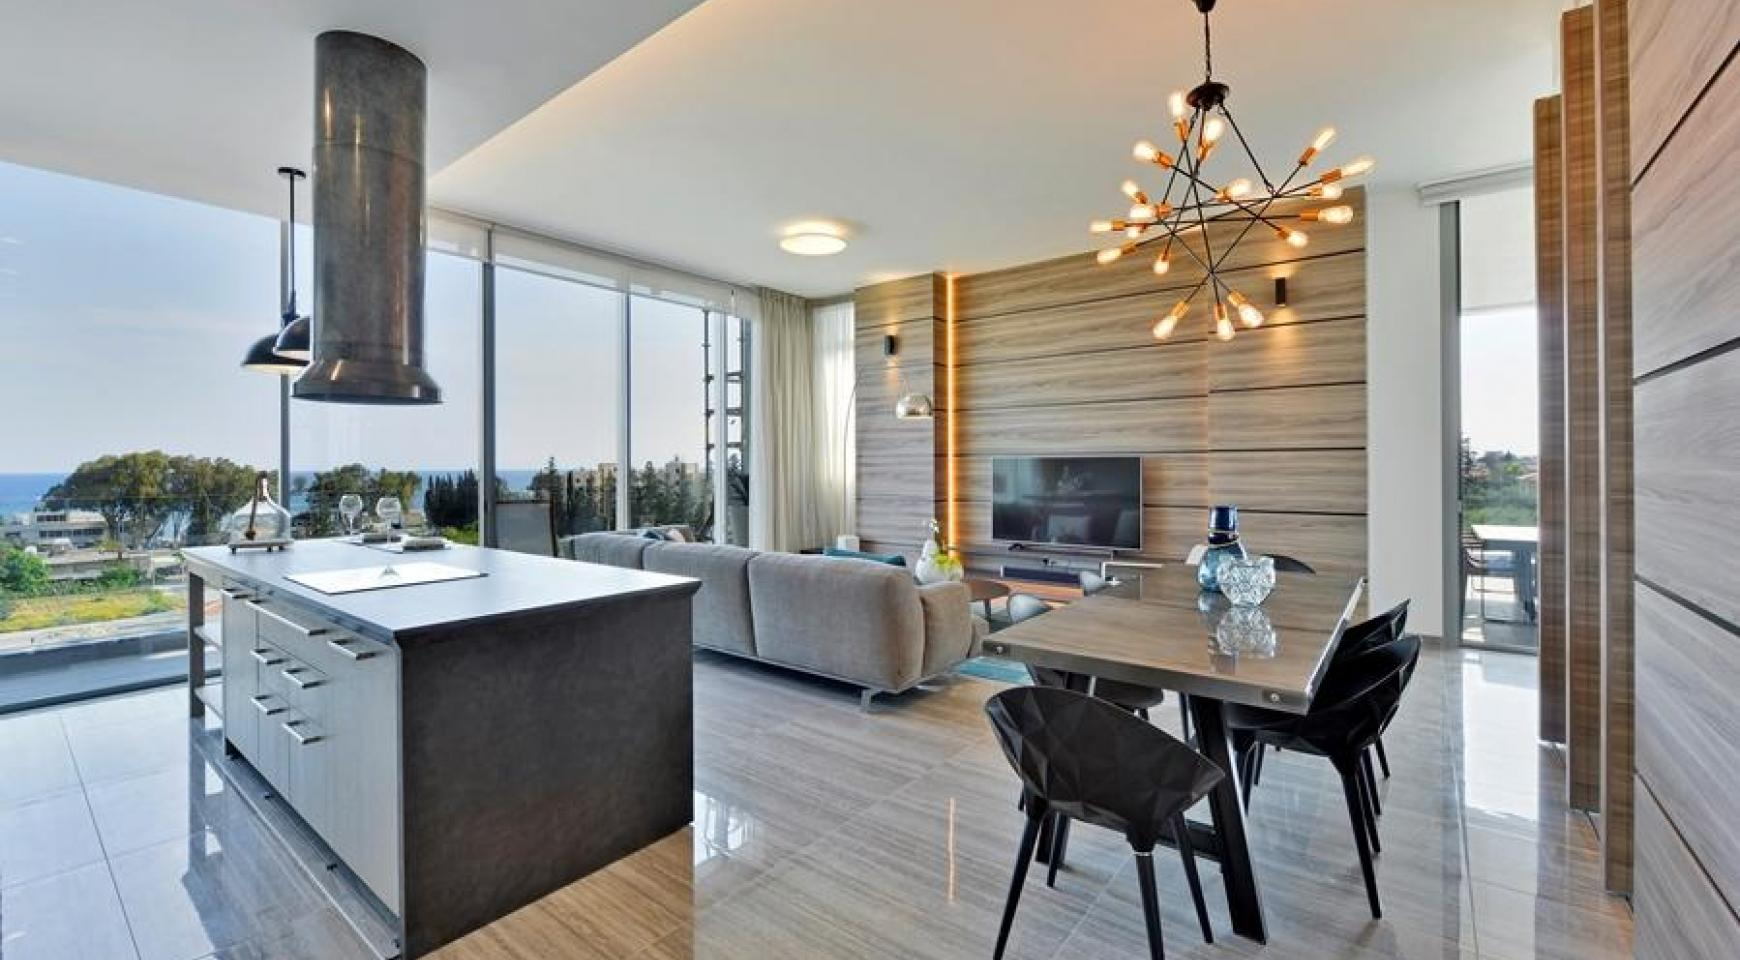 Elite 3 Bedroom Apartment within a New Complex near the Sea - 4